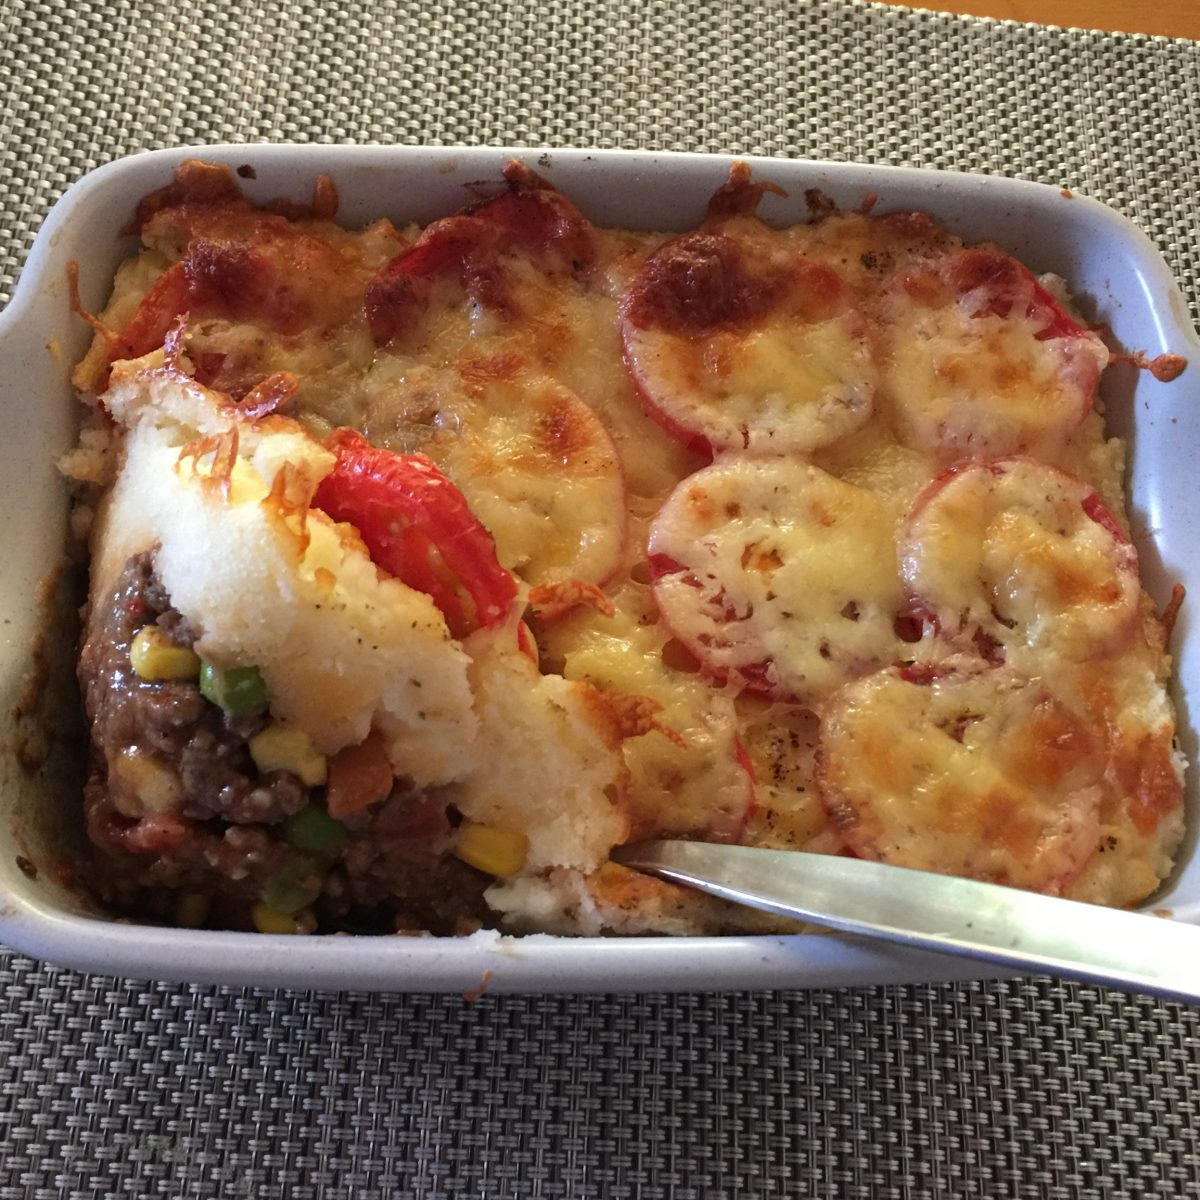 Beef shepherd's pie, savoury beef and vegetables topped with mashed potato - sliced tomatoes and melted cheese